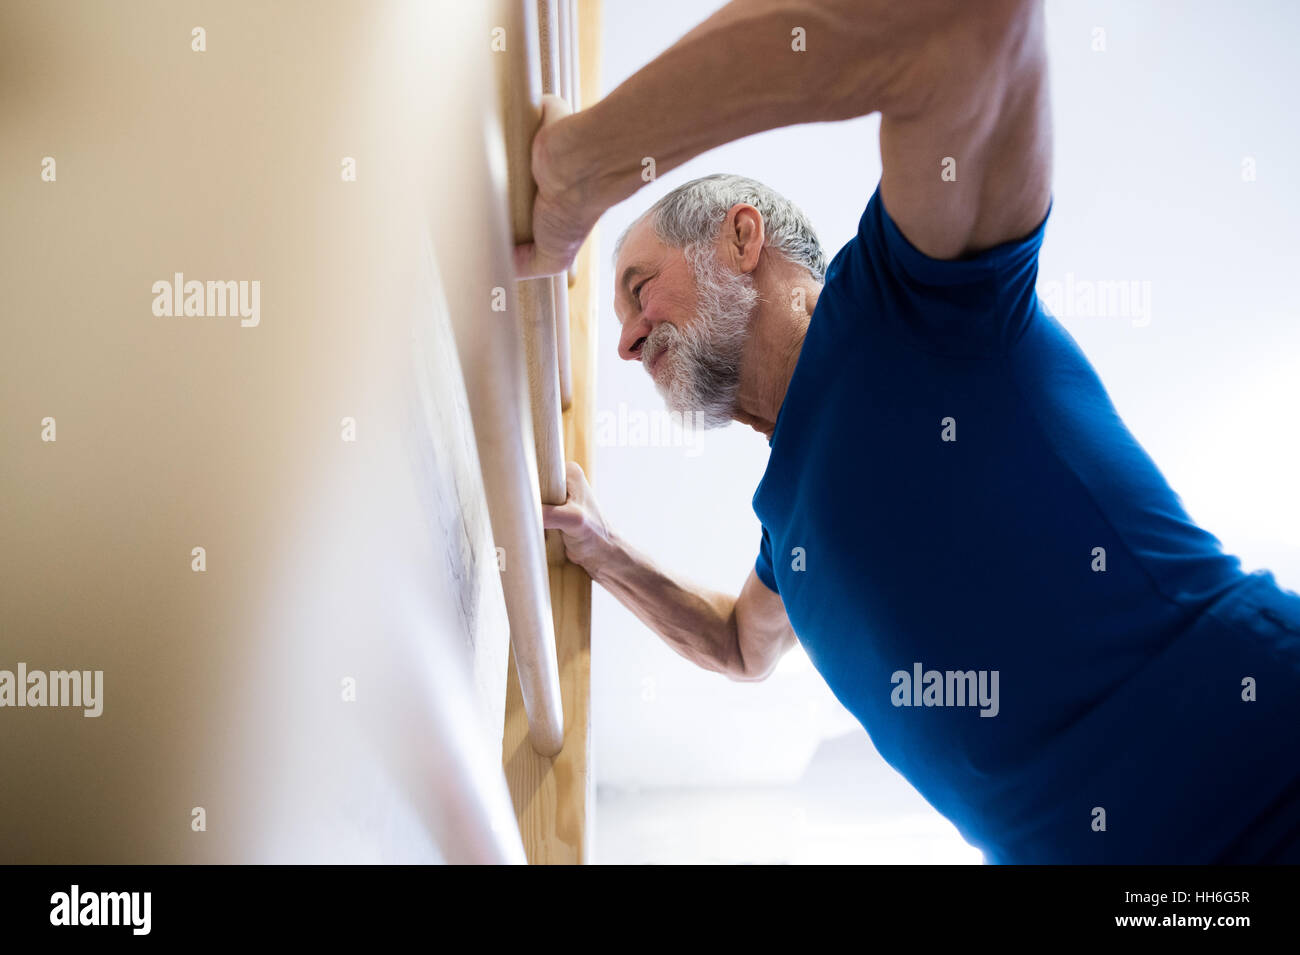 Senior man in gym exercising on wall bars. - Stock Image